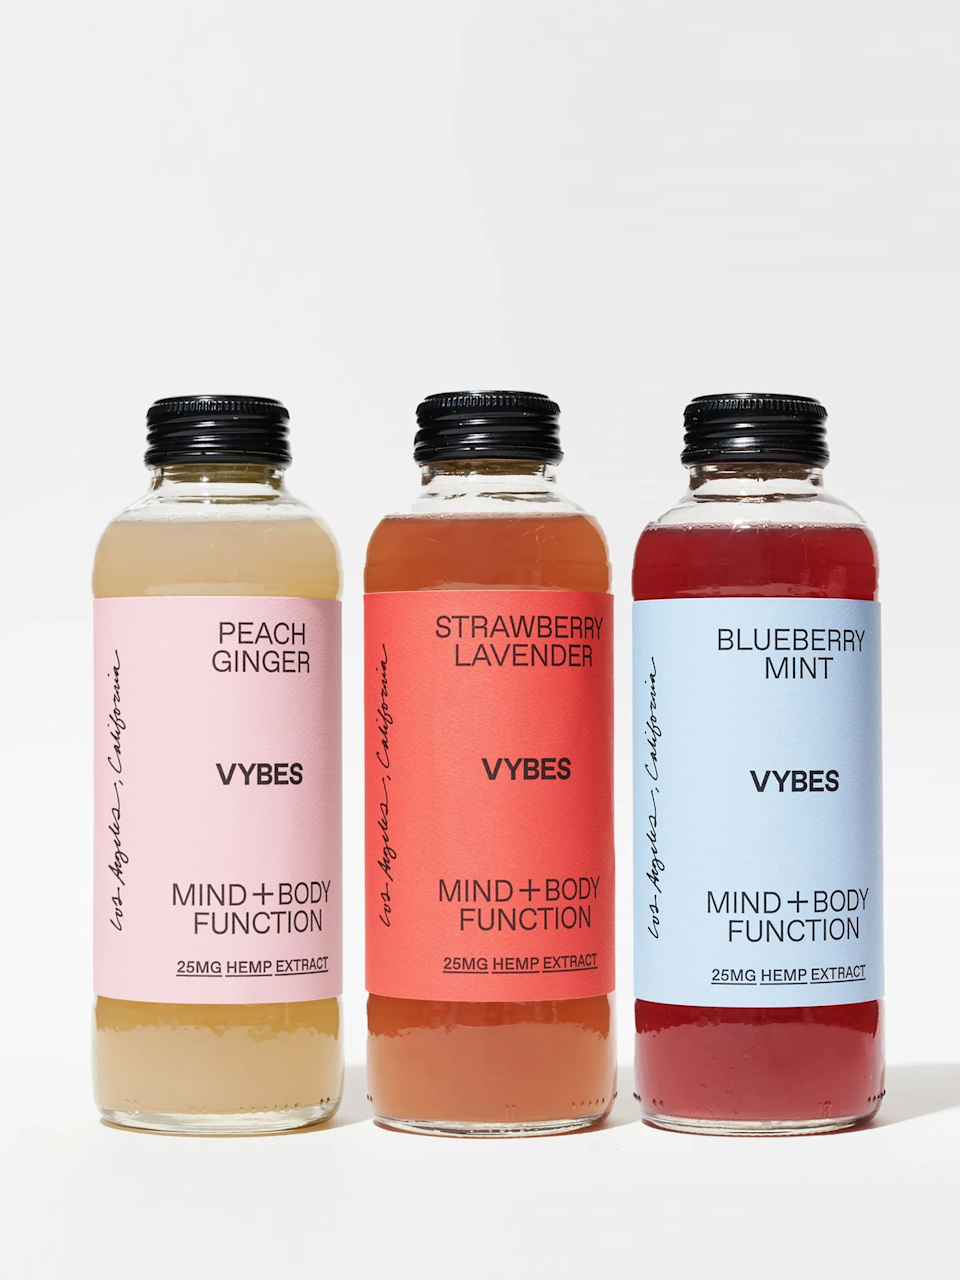 "<h3>Vybes Original Sampler</h3><br>A sampler pack from wellness-beverage brand Vybes is the perfect gift for someone who likes to keep their fridge stocked. These CBD-infused drinks are meant to help calm the body and mind and come in three refreshing flavors: Peach Ginger, Strawberry Lavender, and Blueberry Mint. <br><br><strong>Vybes</strong> Vybes Original Sampler, $, available at <a href=""https://go.skimresources.com/?id=30283X879131&url=https%3A%2F%2Fstandarddose.com%2Fcollections%2Fcbd-collection%2Fproducts%2Foriginal-sampler-vybes-drinks"" rel=""nofollow noopener"" target=""_blank"" data-ylk=""slk:Standard Dose"" class=""link rapid-noclick-resp"">Standard Dose</a>"